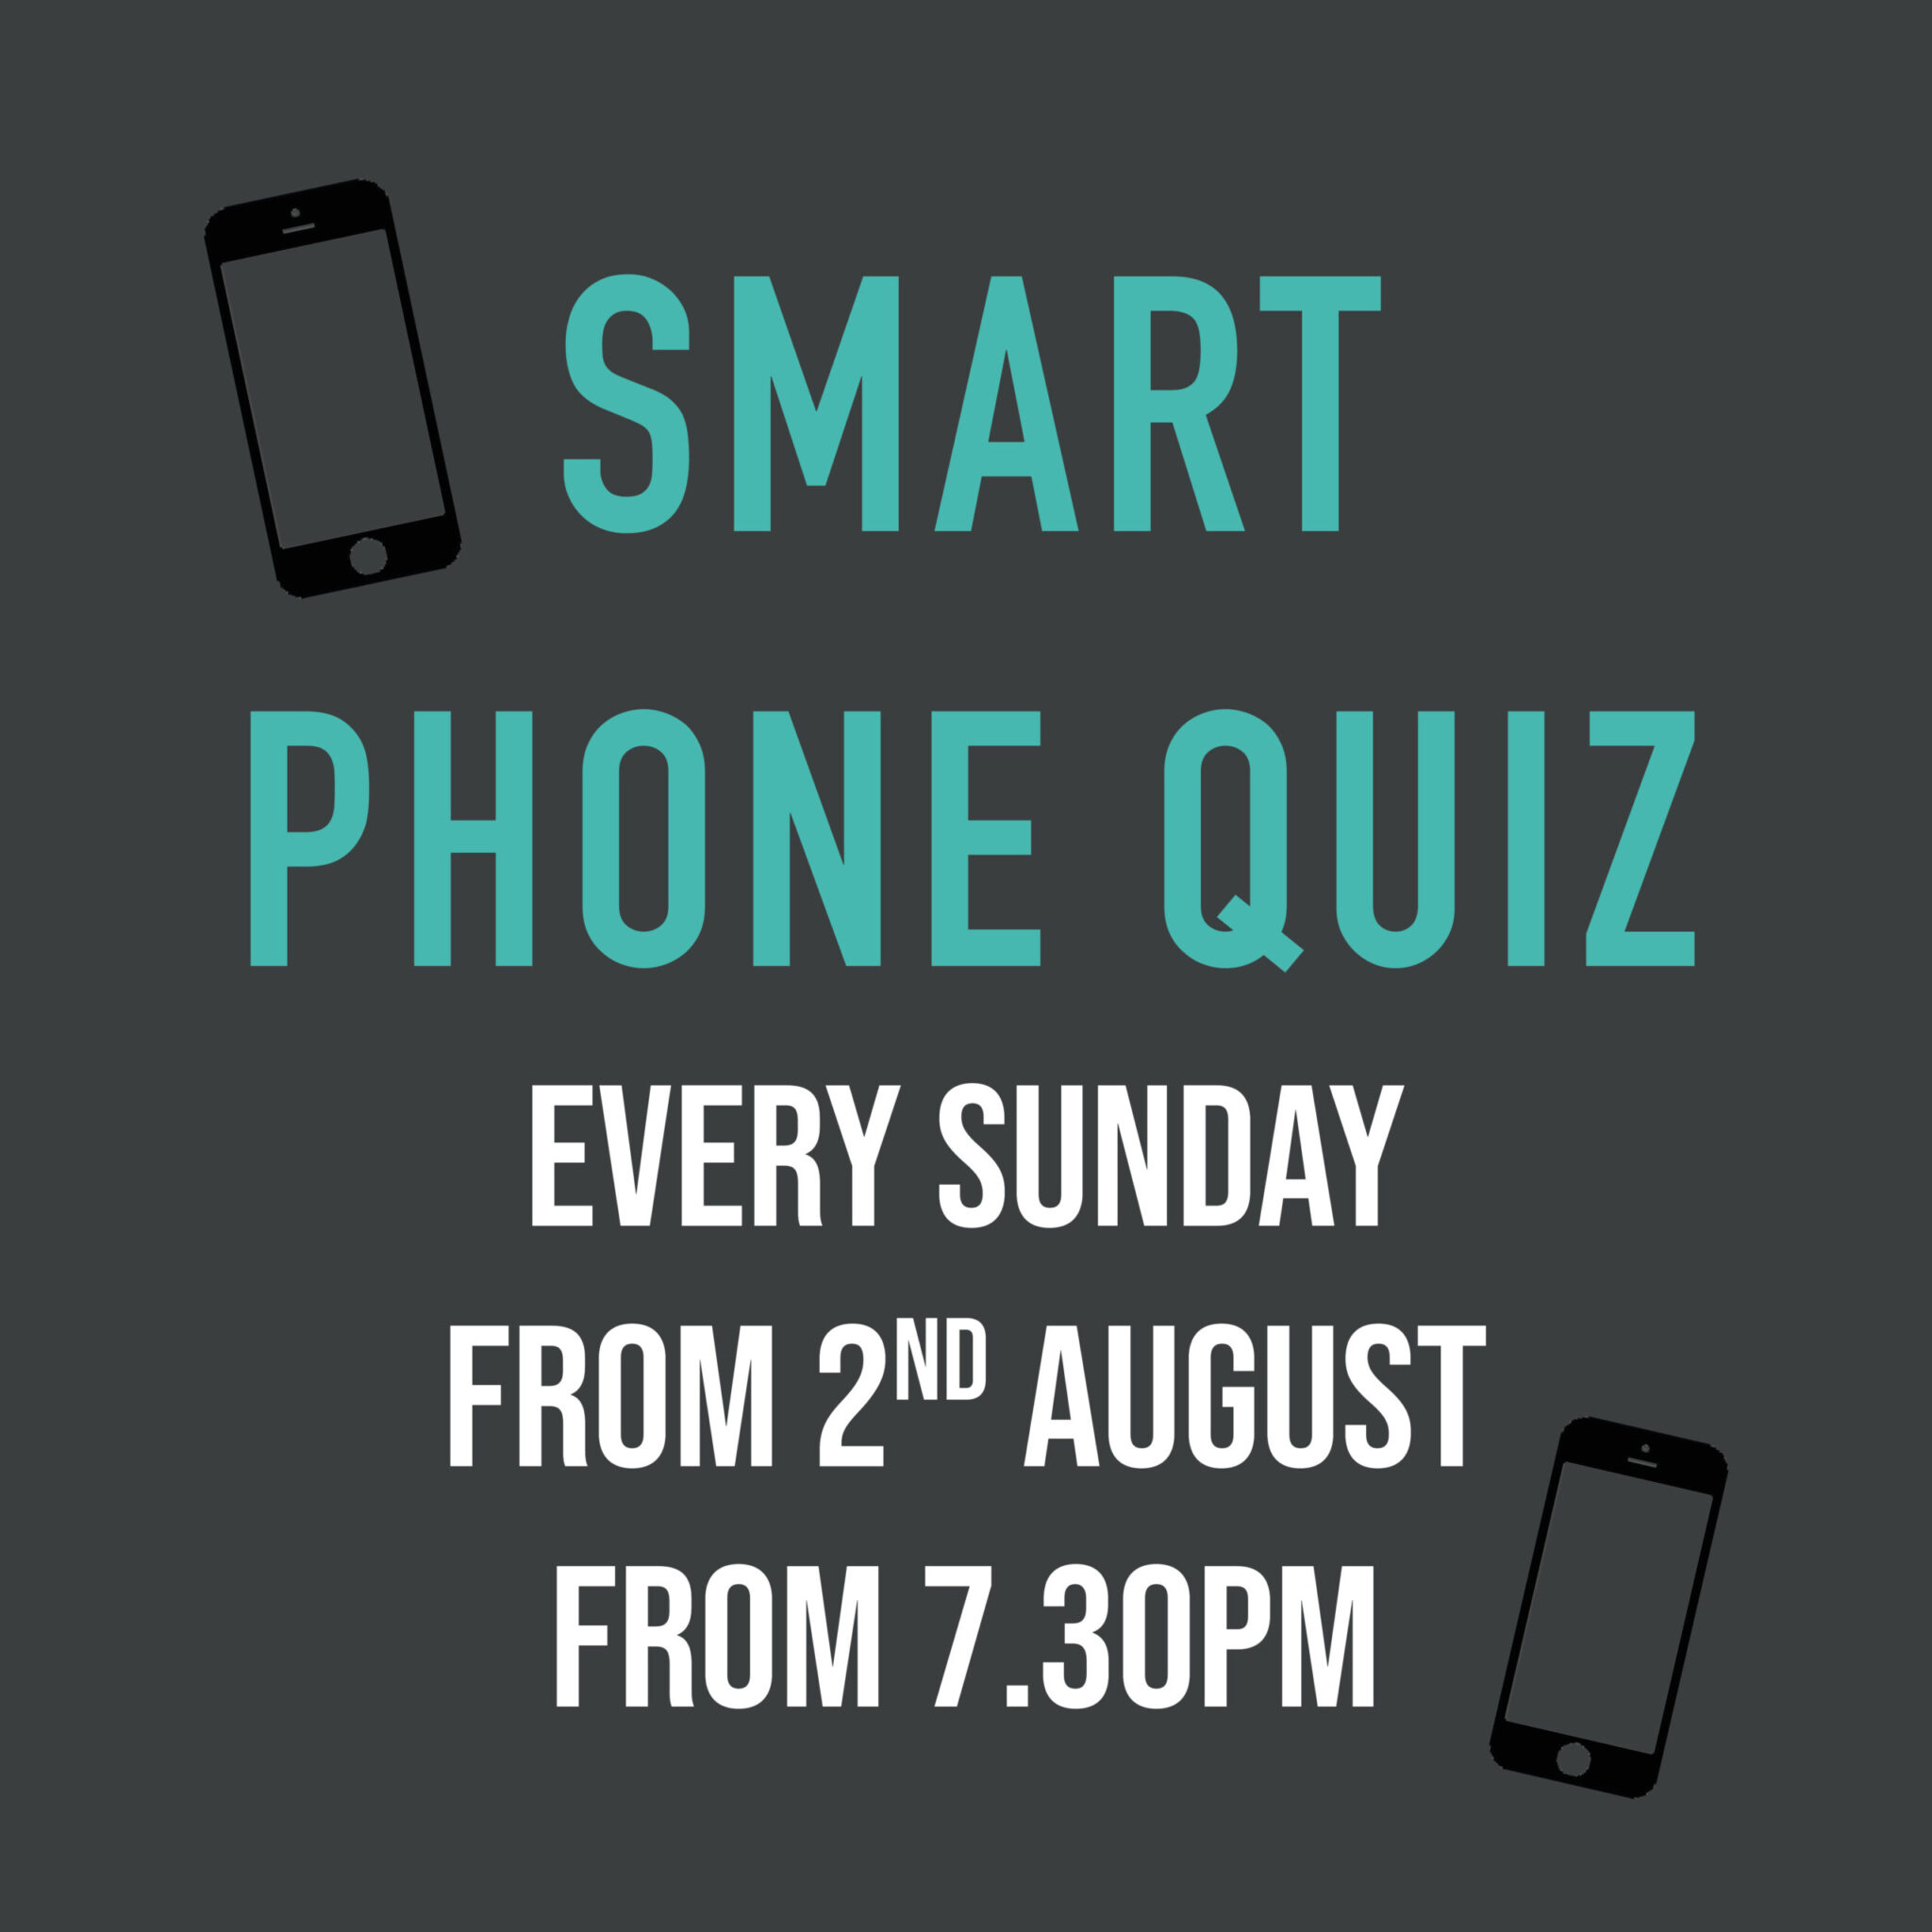 smart phone quiz roebuck